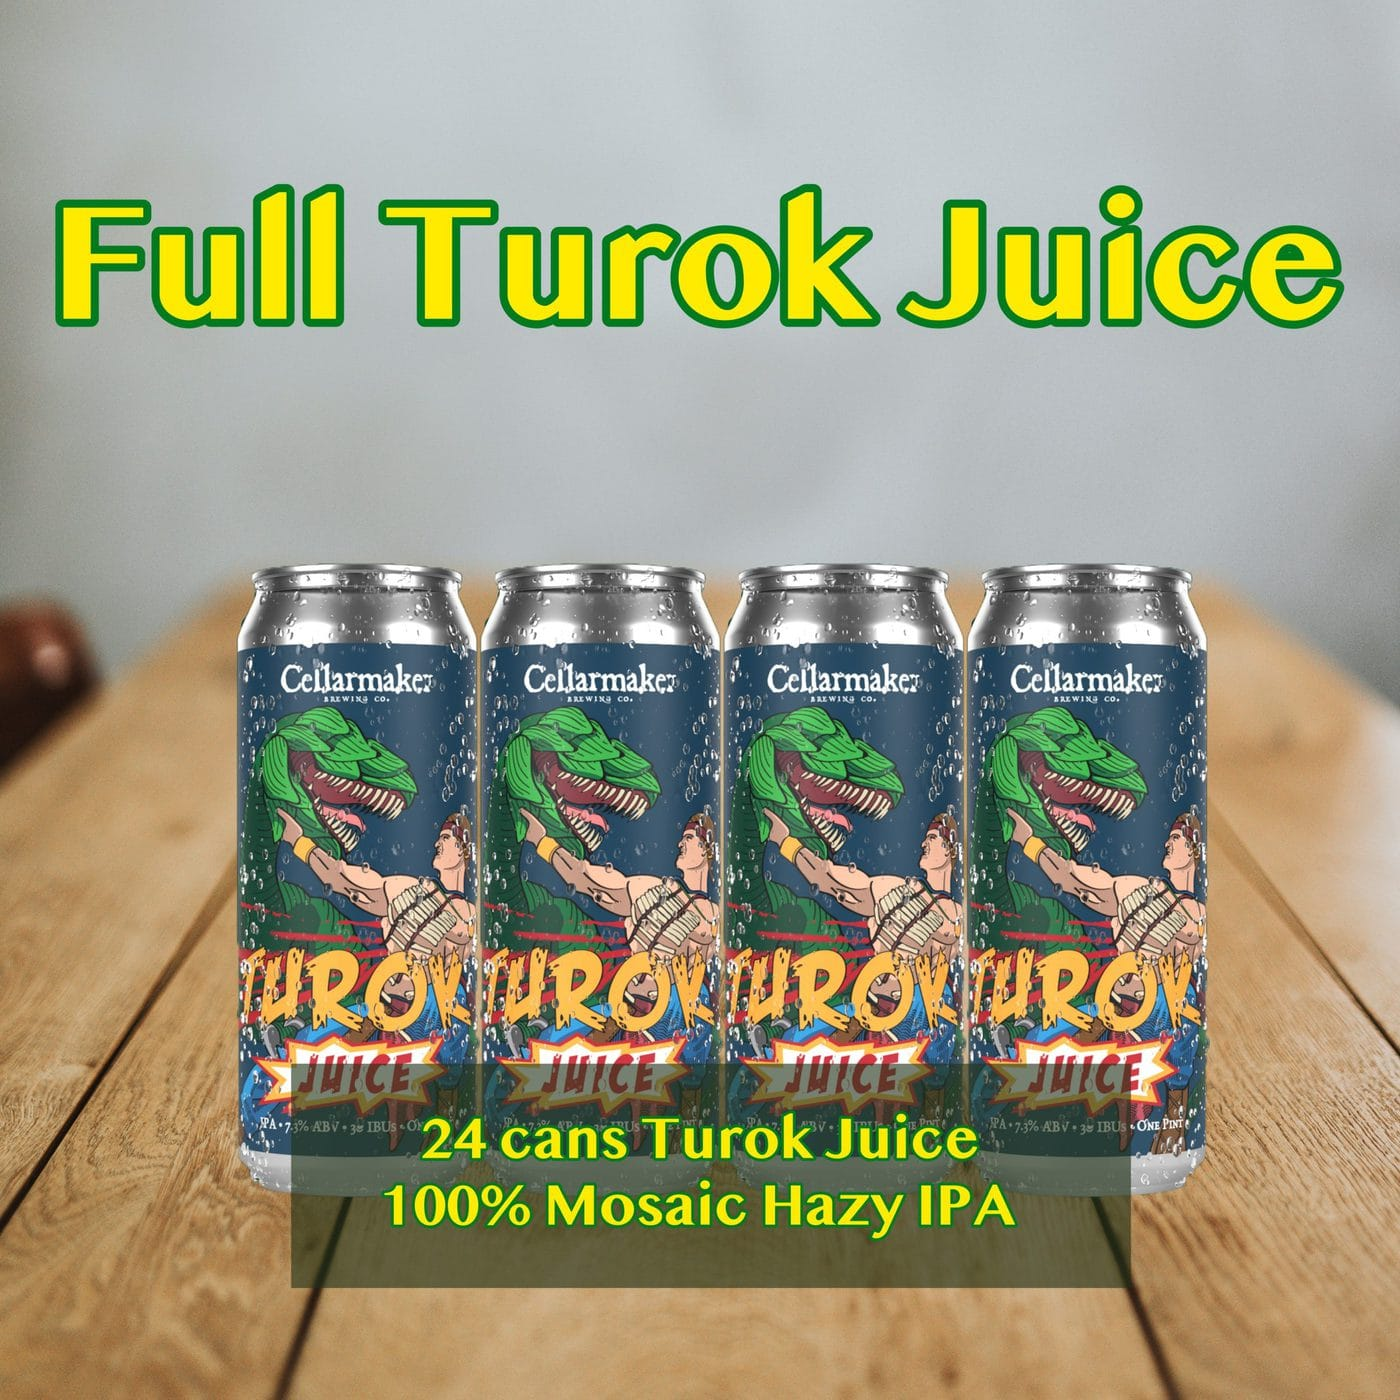 FULL CASE 24 CANS Turok Juice Hazy IPA – Shipping Out Tuesday 3/2 For Next Day Delivery*